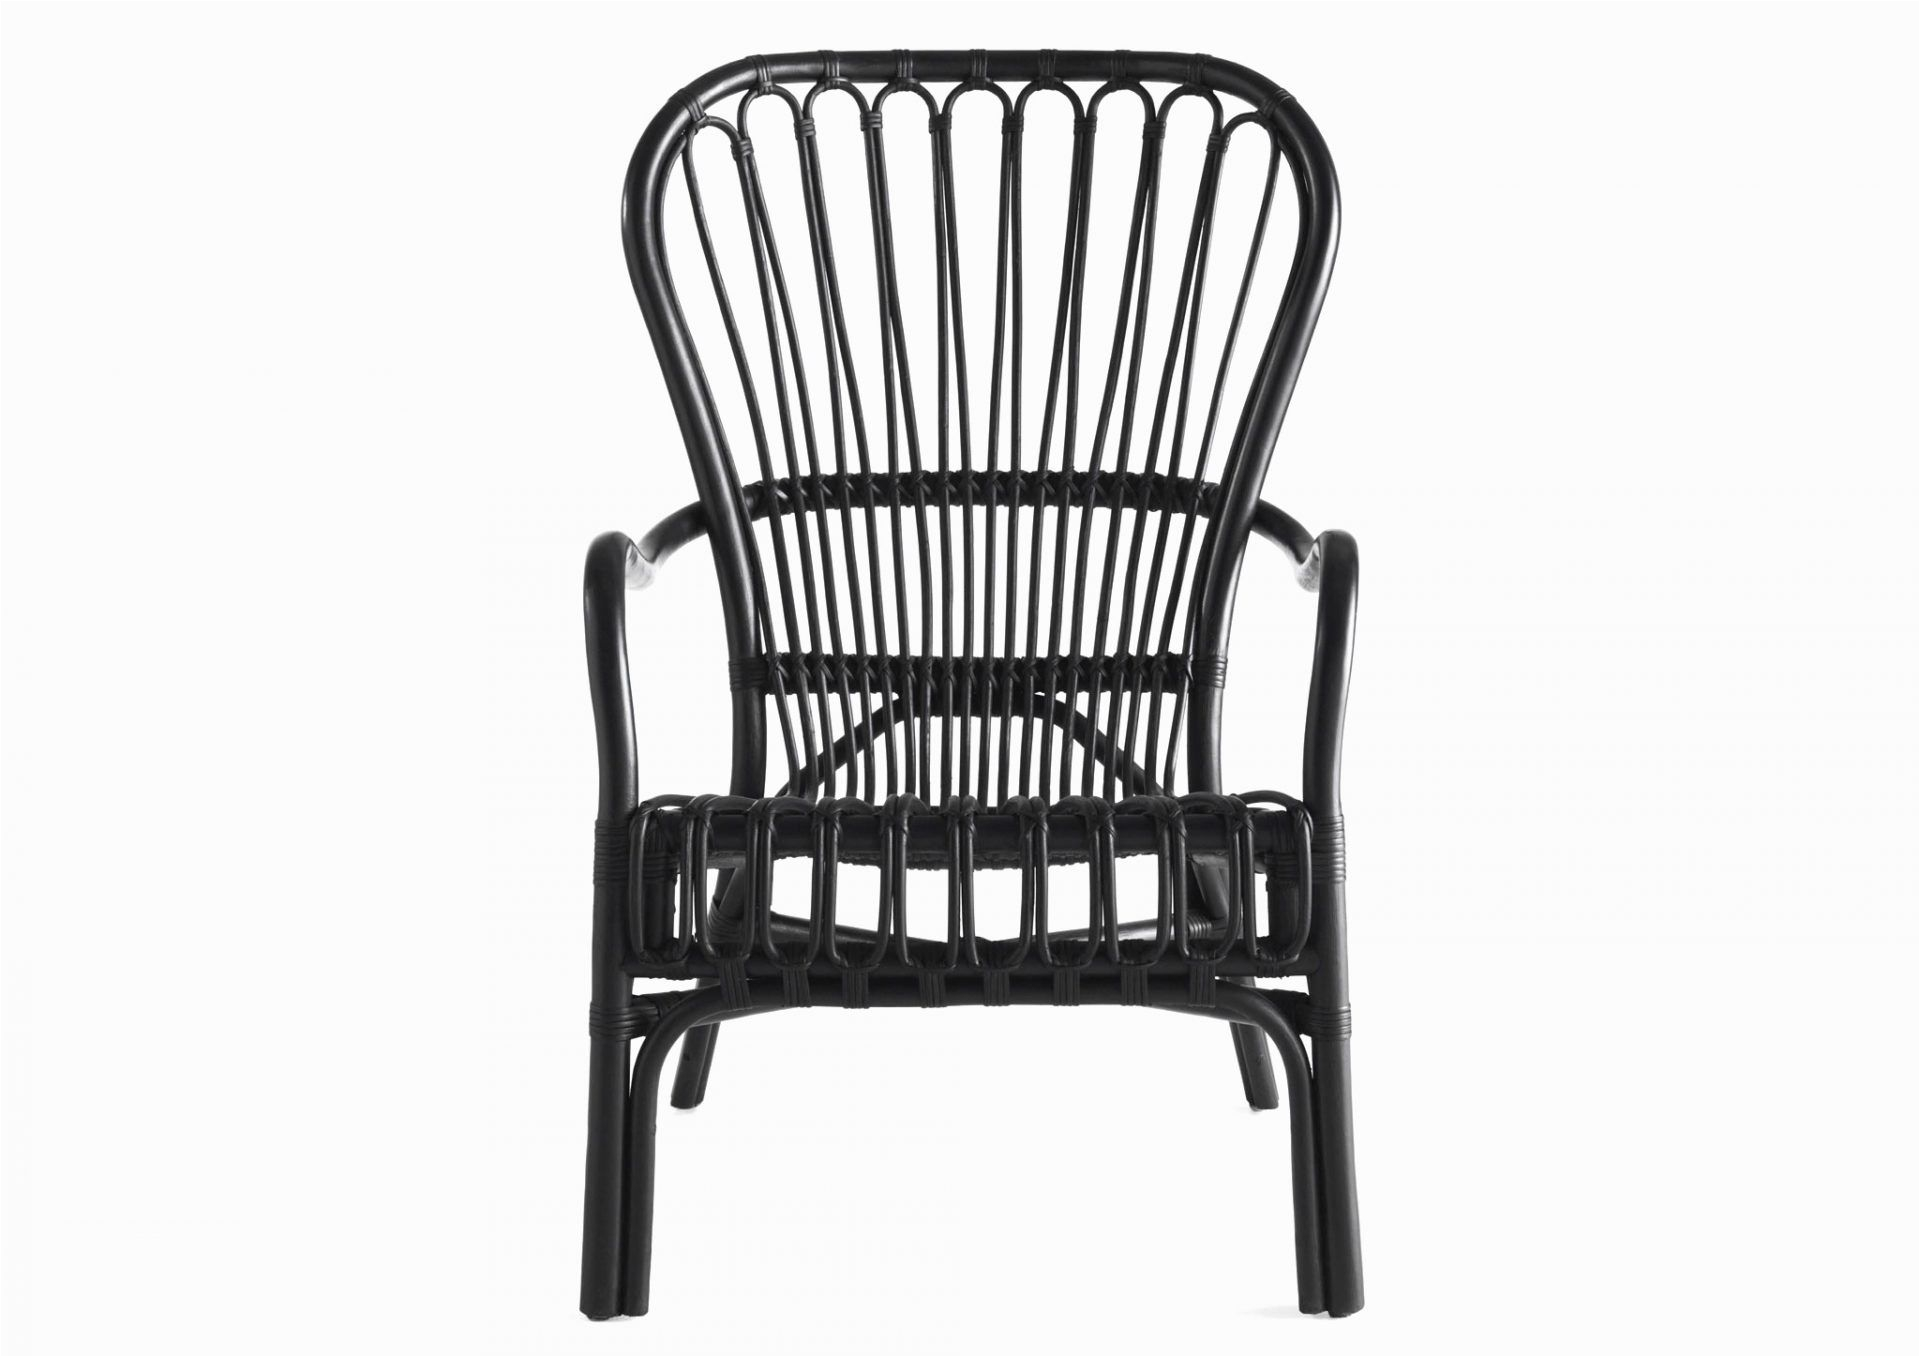 Rattan Meditation Chair Ikea Chair Stunning New Ikea Rattan Chair     Rattan Meditation Chair Ikea Chair Stunning New Ikea Rattan Chair Photos  Home Improvement